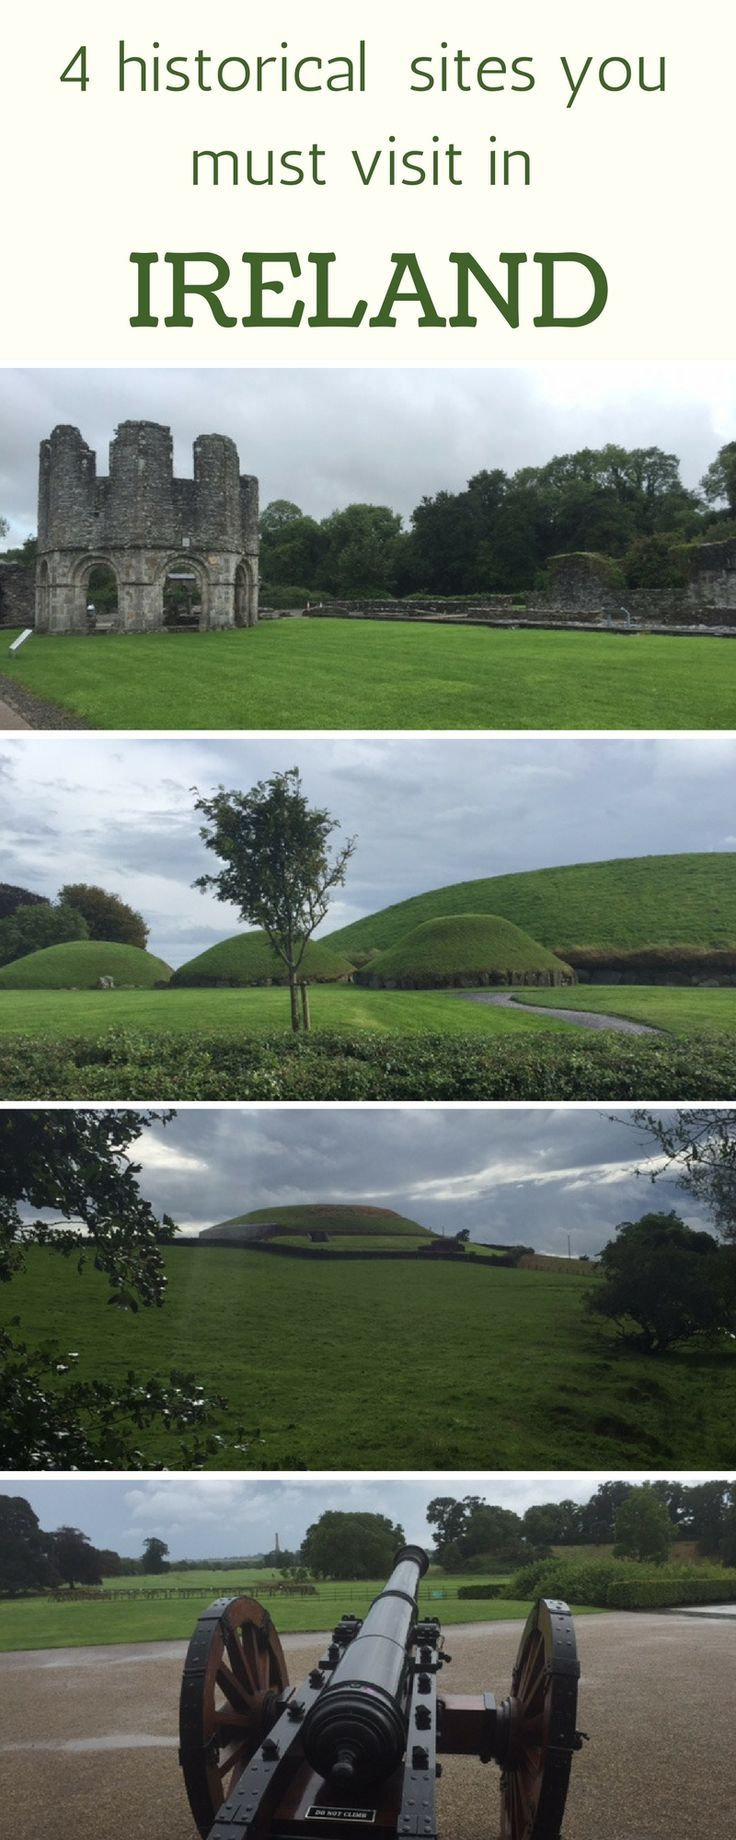 4 must see places in Ireland that will make you discover its rich history from Neolithic times to the Middle ages and the modern era. 1 day Itinerary through the Boyne Valley, Ireland: Knowth, Dowth, Newgrange, Mellifont abbey, Battle of the Boyne grounds.